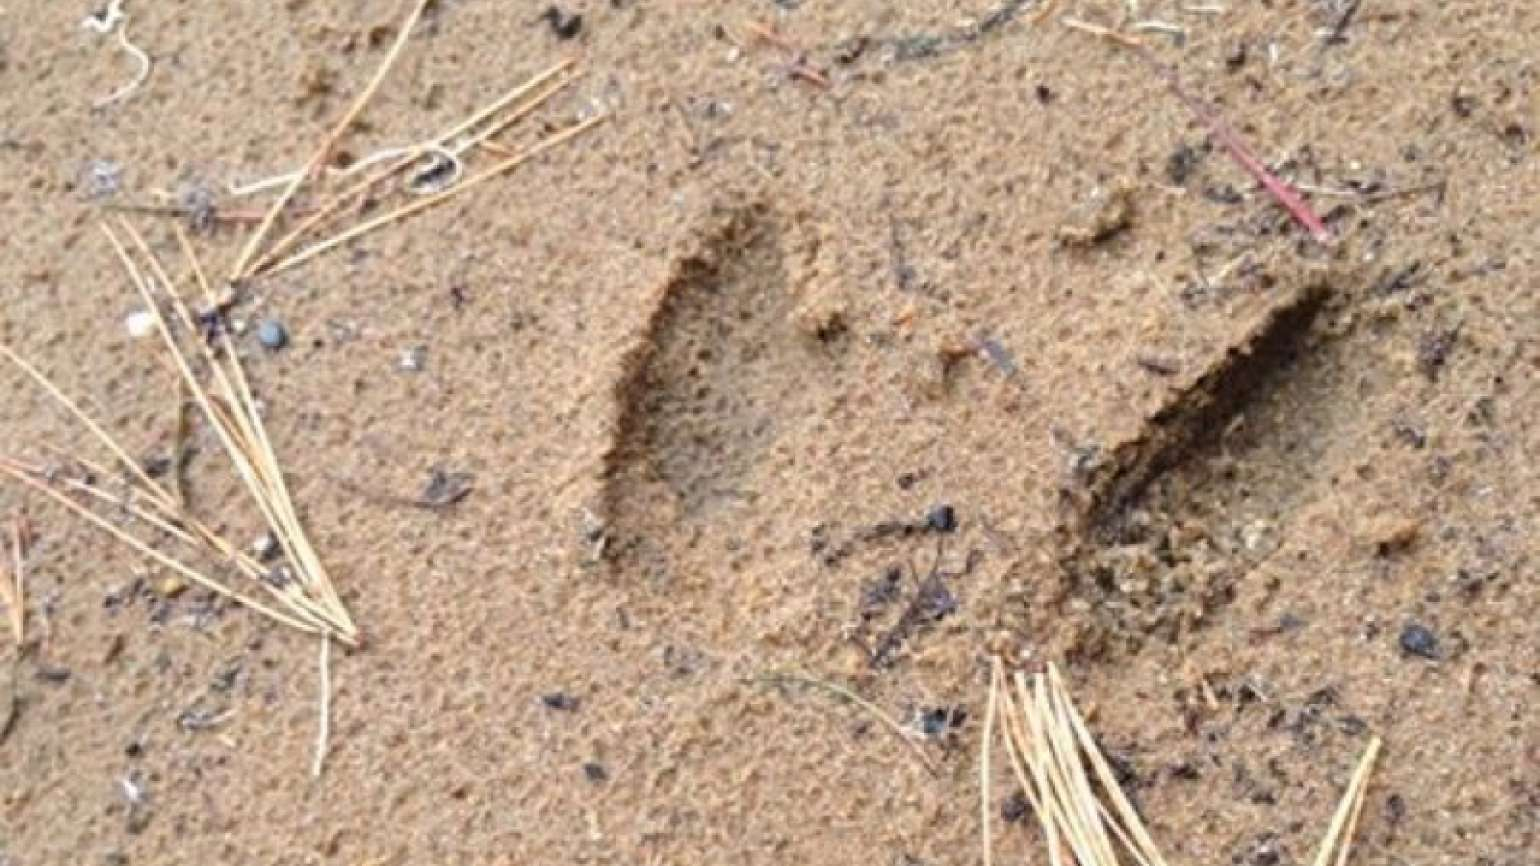 Buck footprint in the sand, submitted by Angels on Earth reader Dawn Guterman